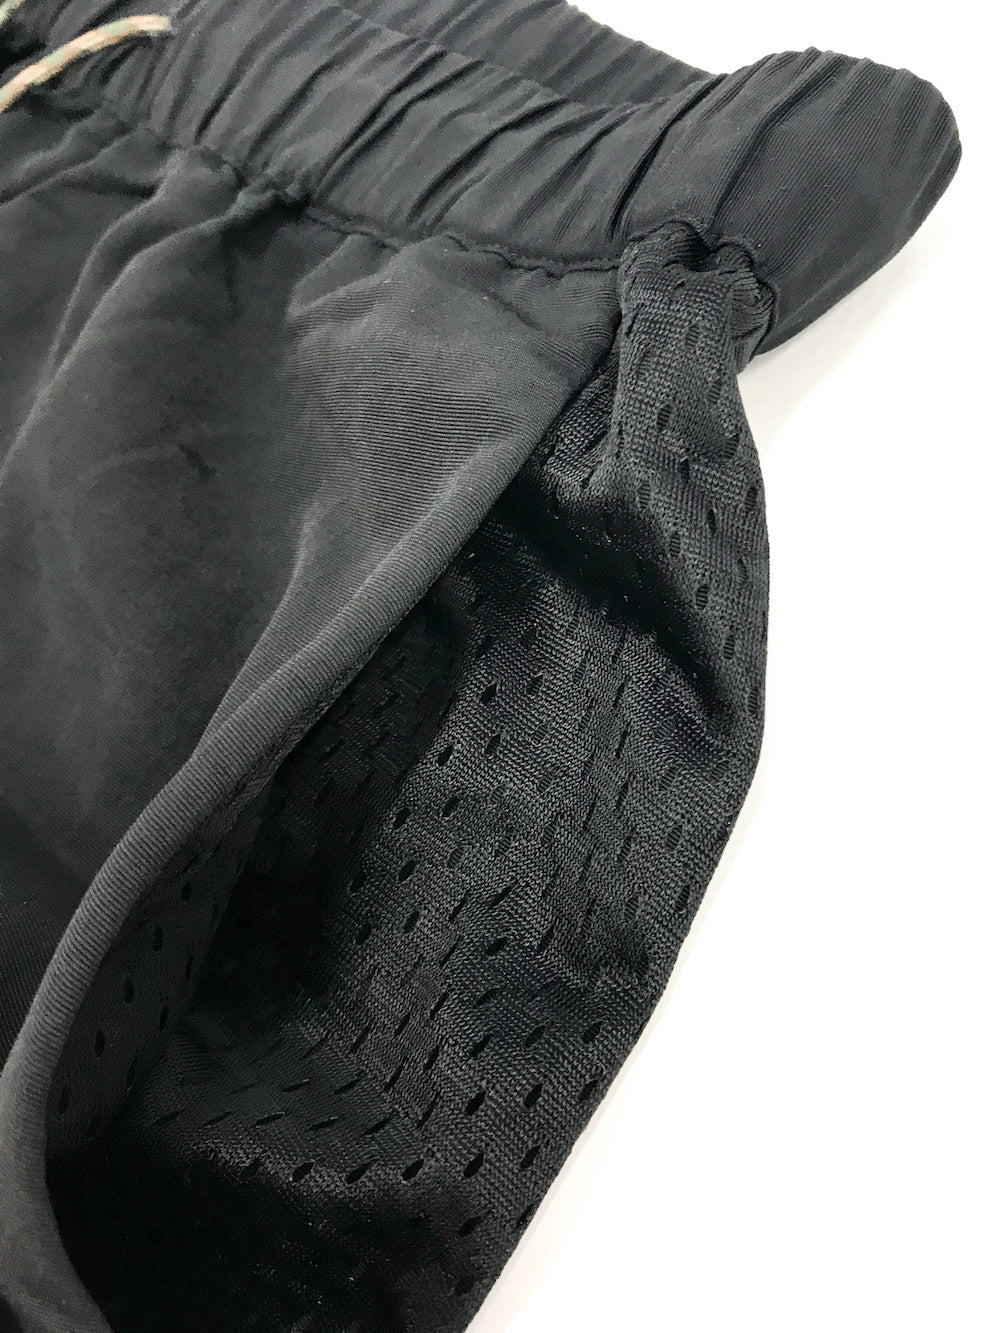 GREI new york (グレイ) / TRACK PANTS 4-PLY DWR FINISH BLACK。サイドポケット画像。